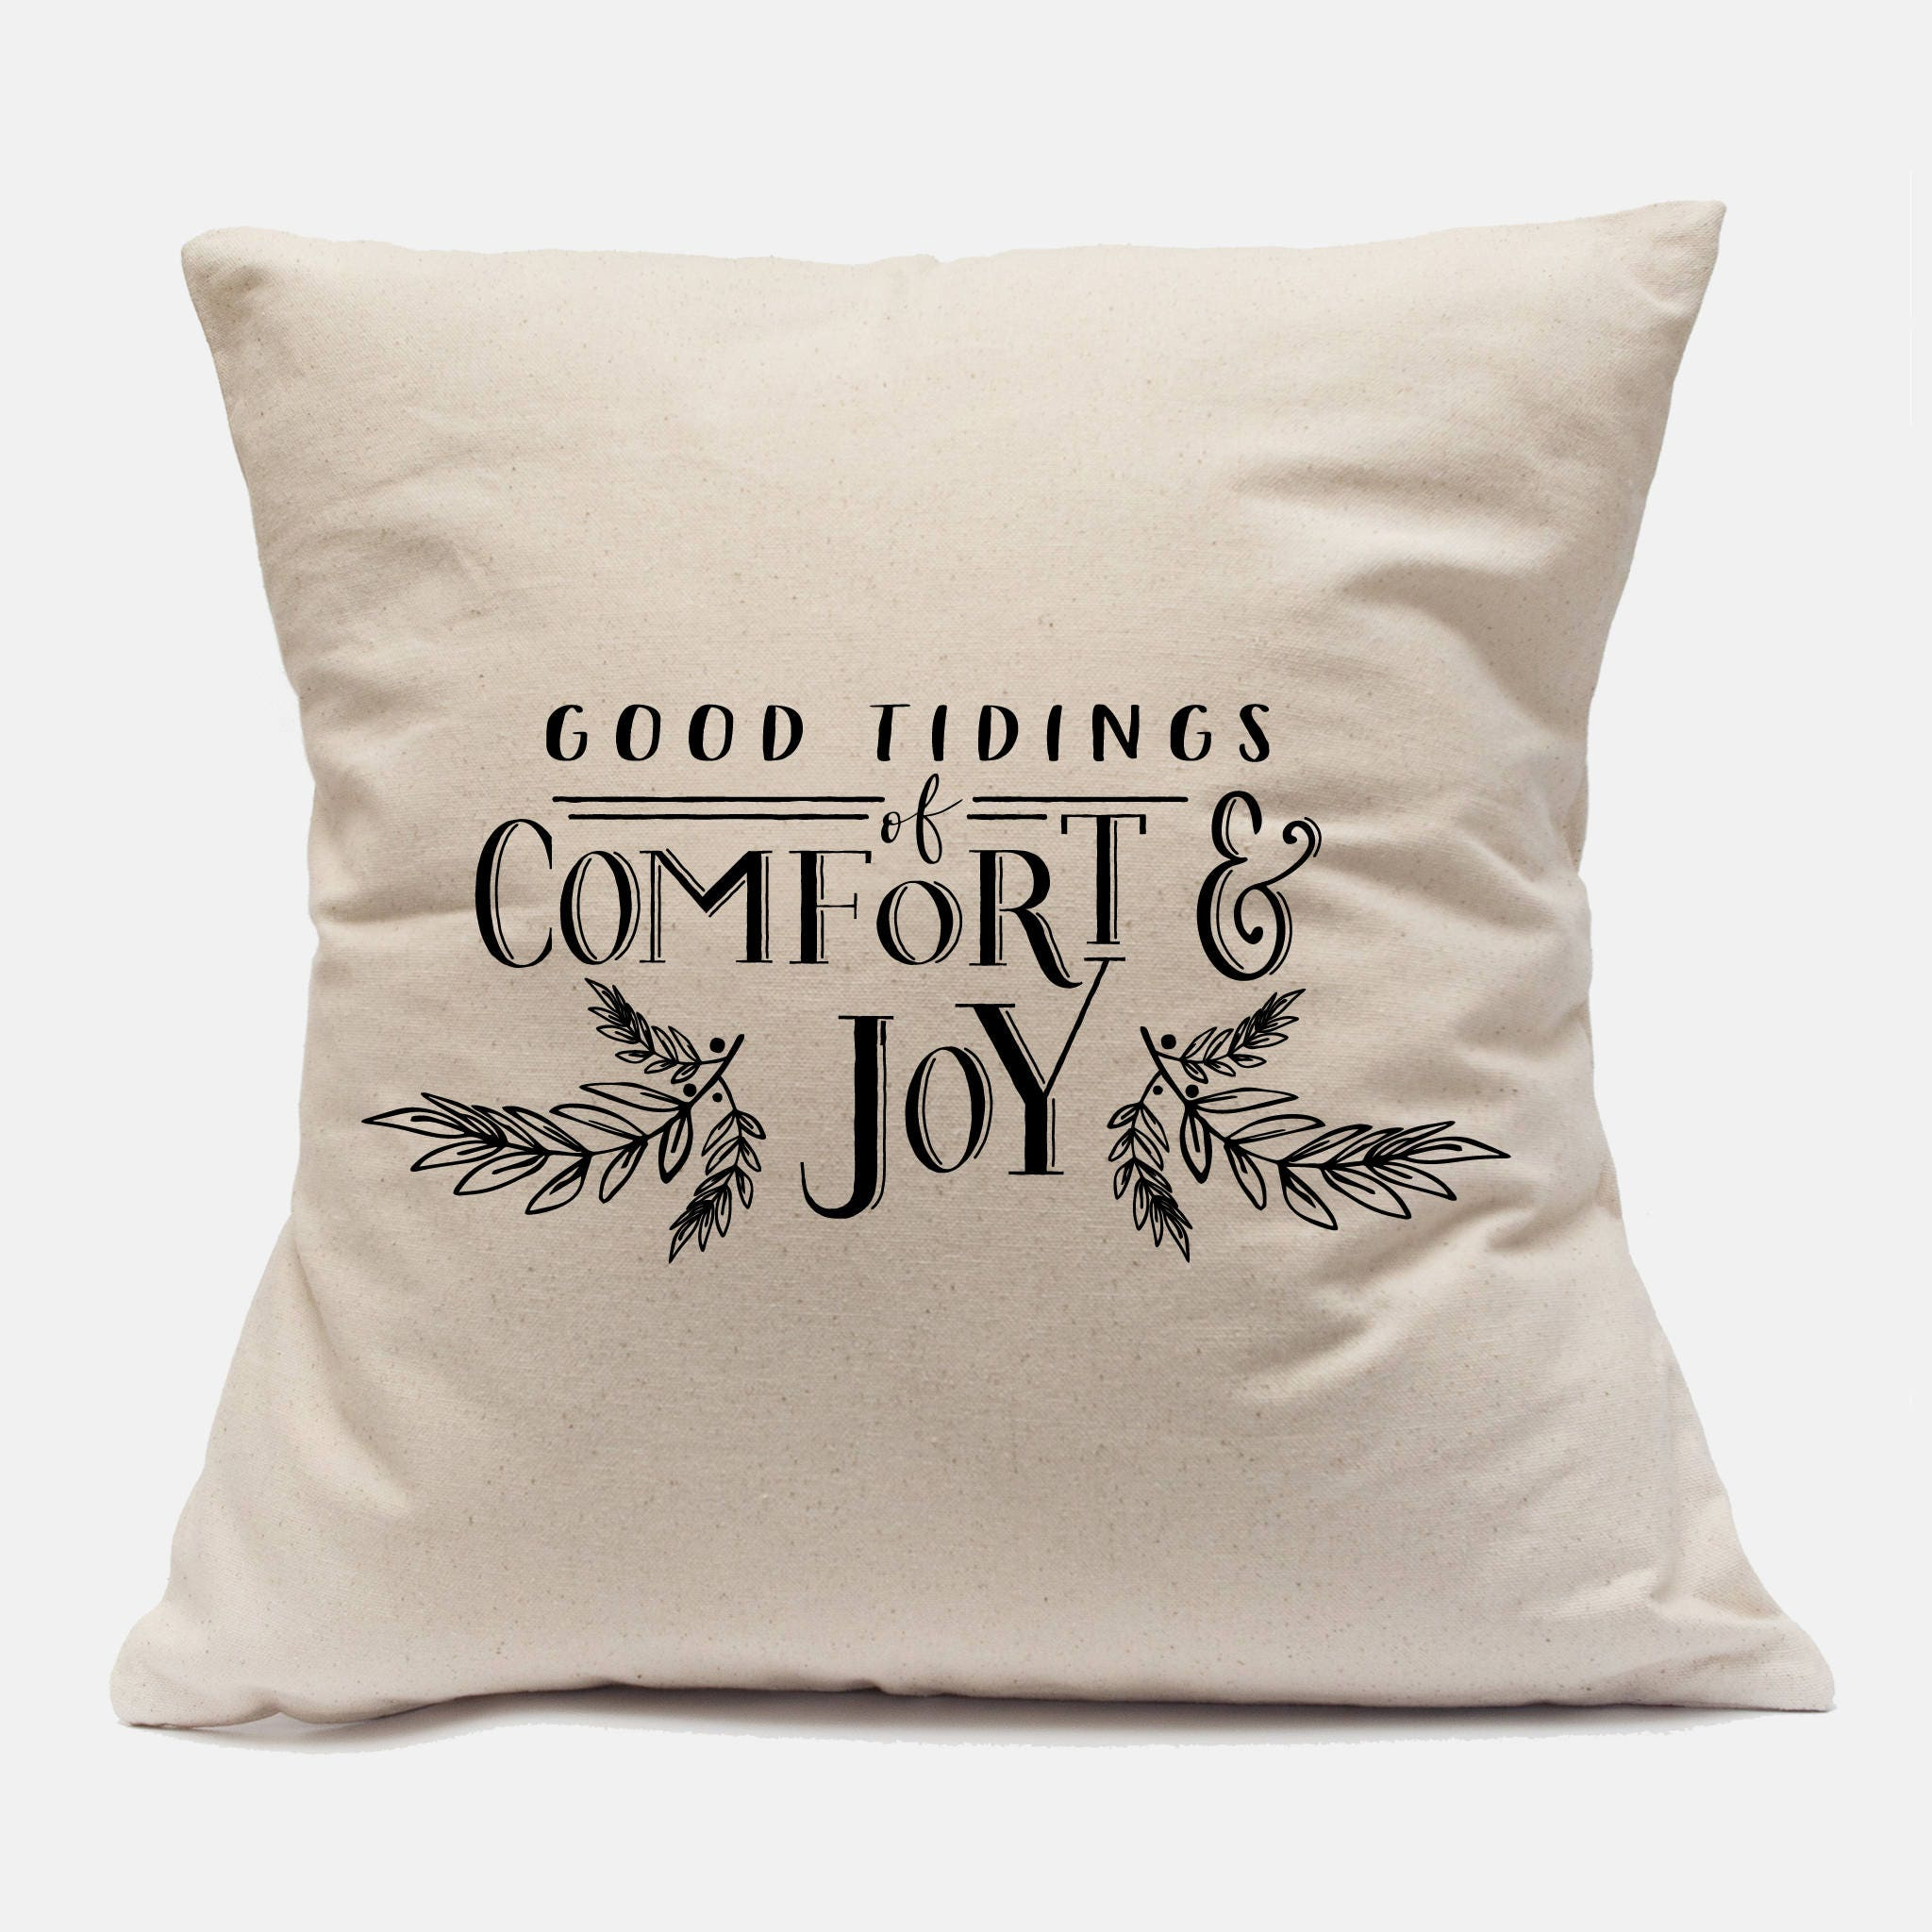 Good Tidings of Comfort and Joy Pillow Cover Comfort and Joy